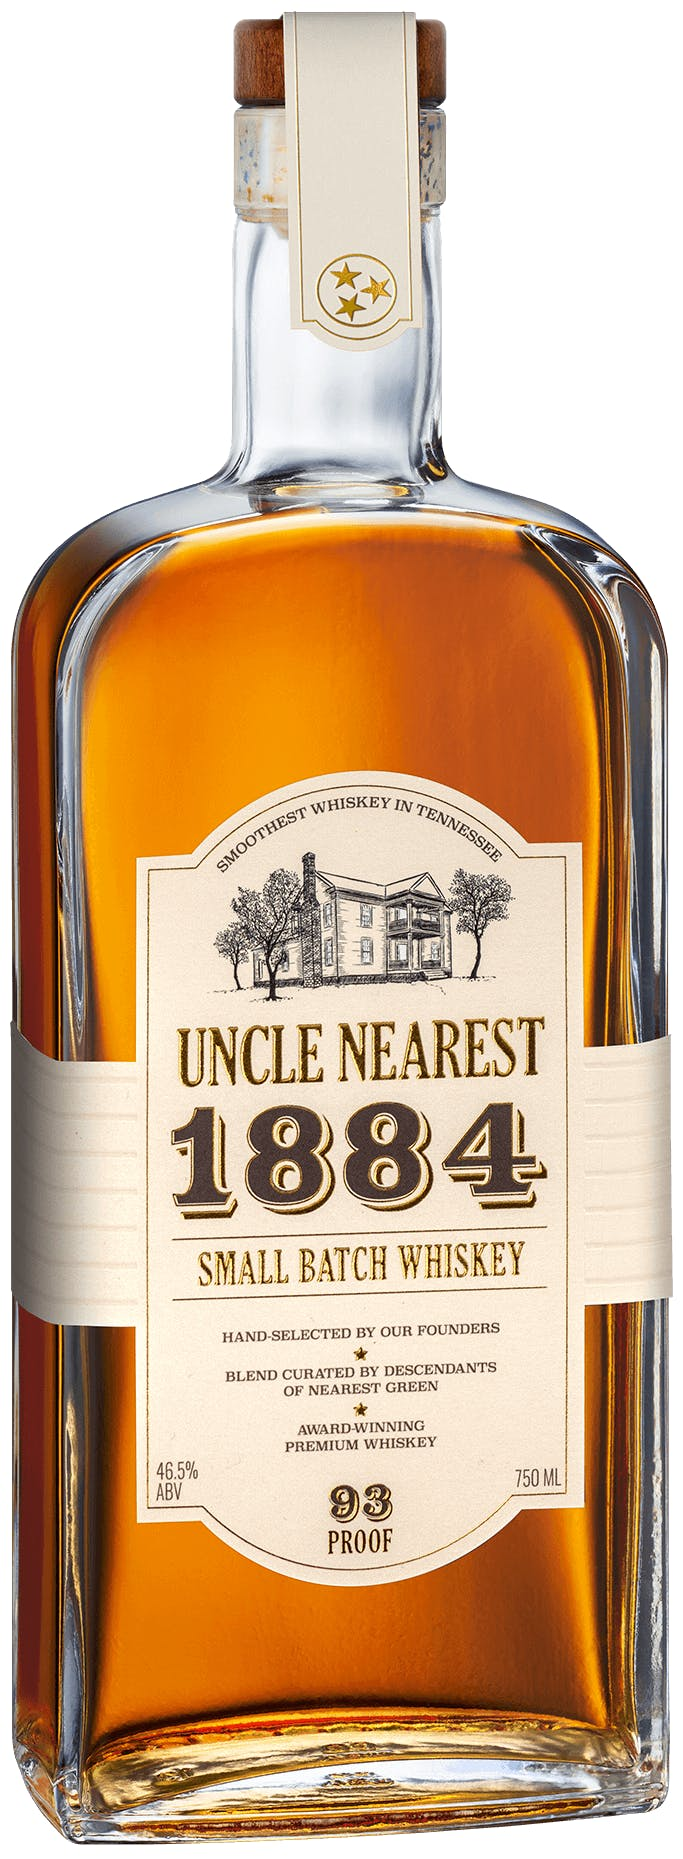 Uncle Nearest 1884 Small Batch Whiskey 93 Proof